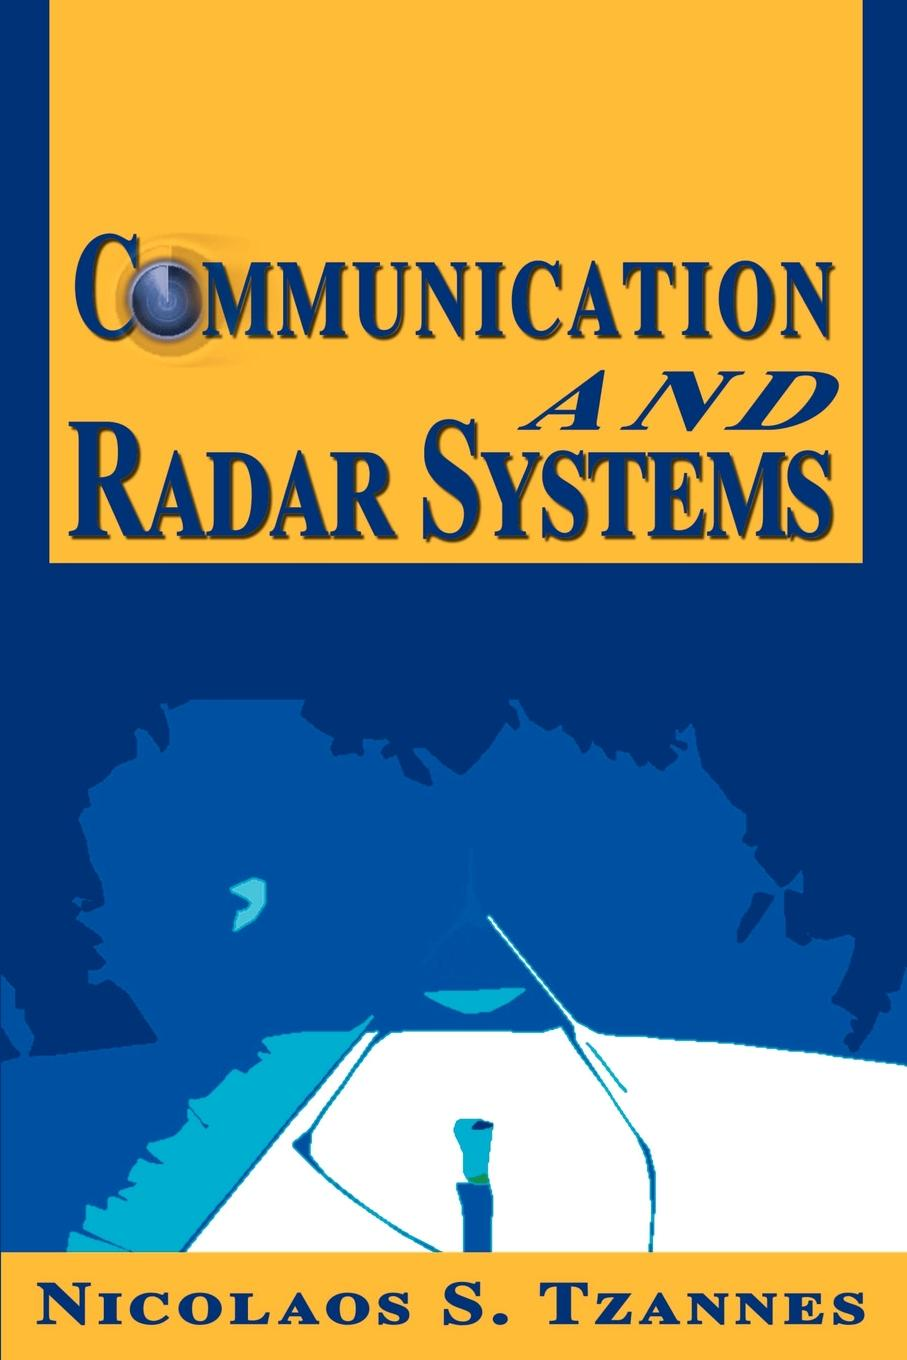 Communication and Radar Systems. Nicolaos S. Tzannes